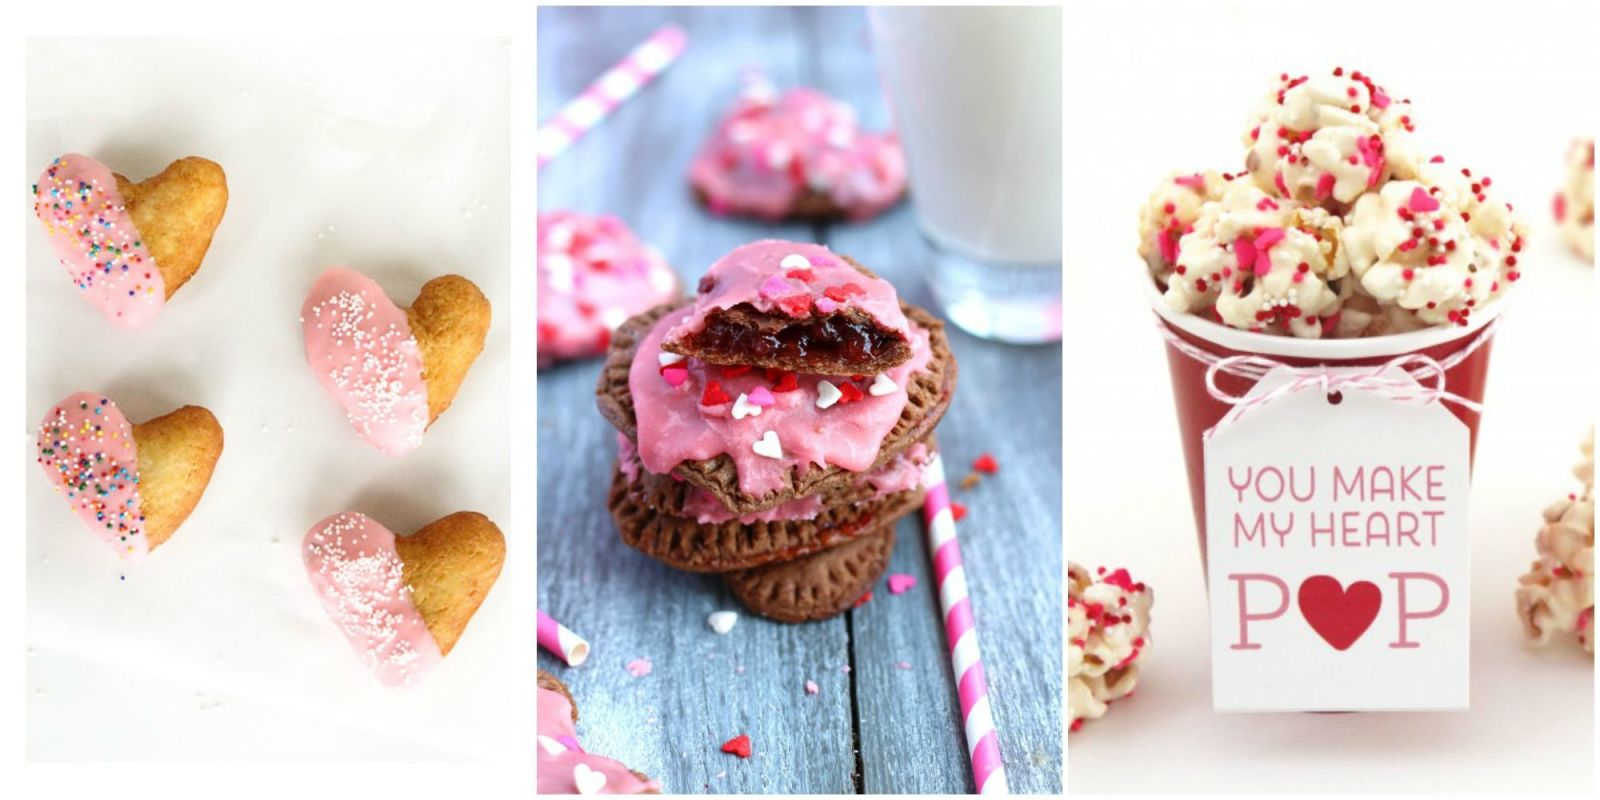 50 Best Valentine's Day Recipes - Easy Cooking Ideas for ...